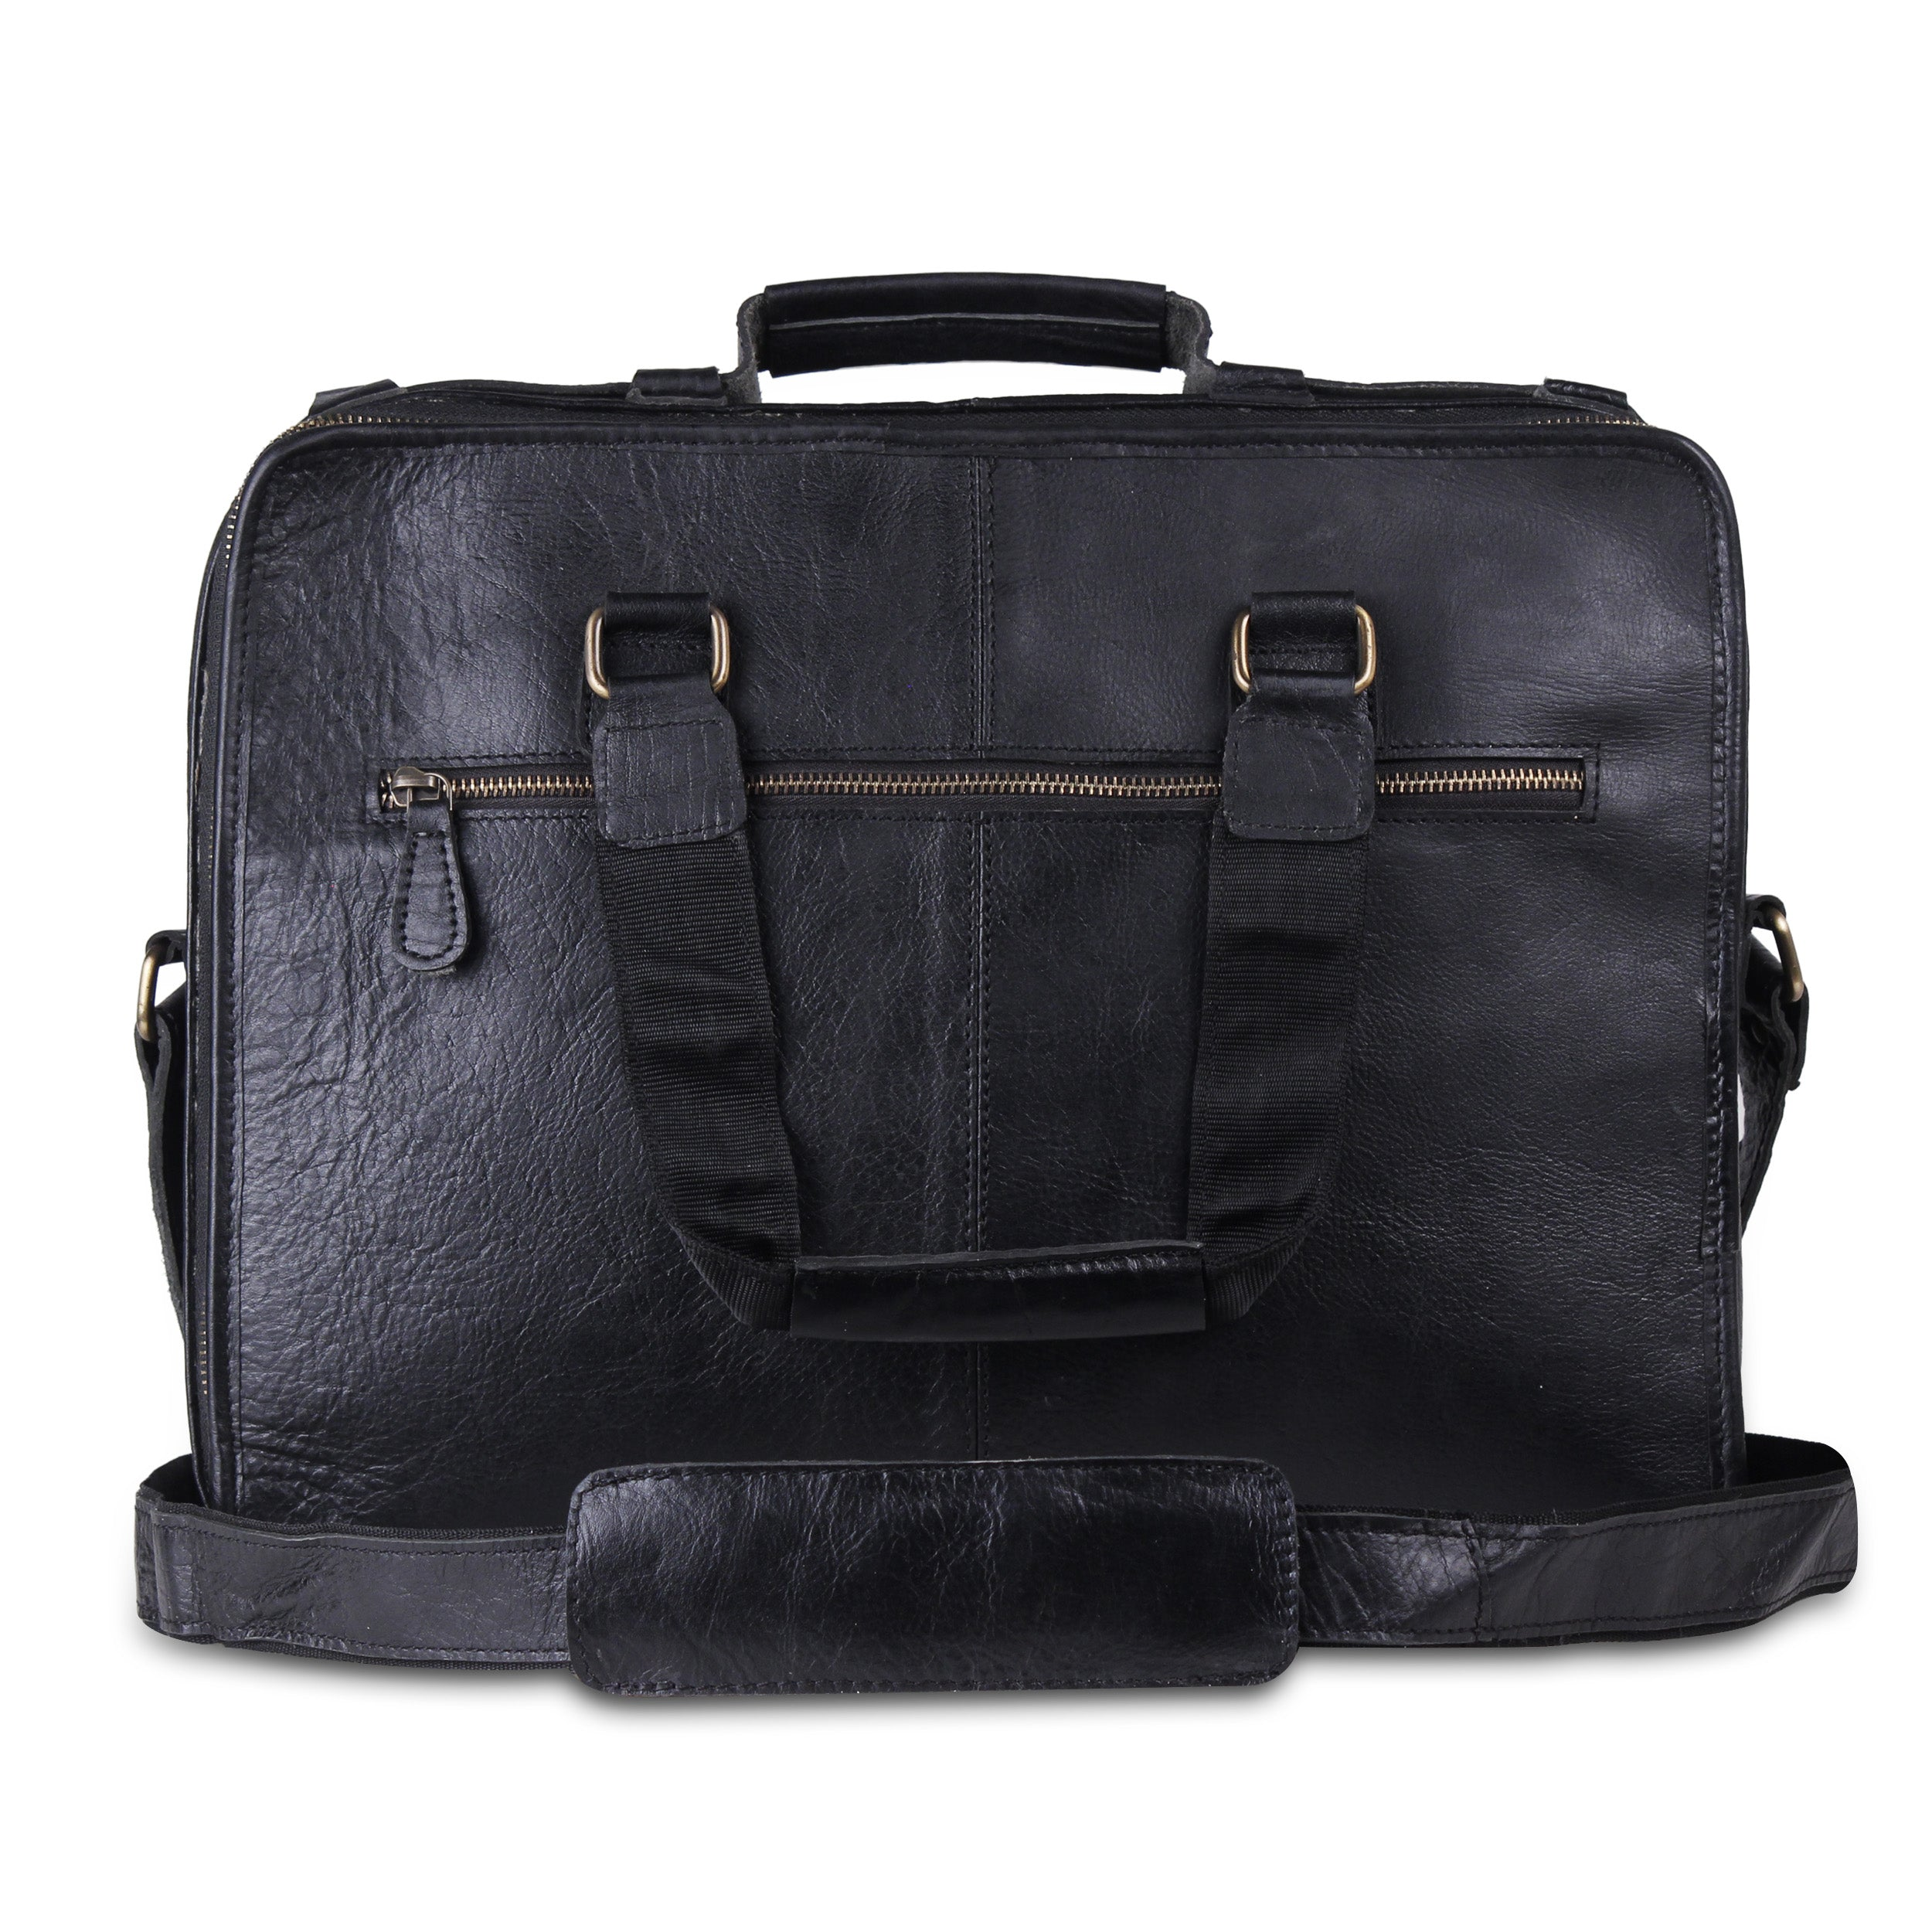 Genuine Leather Padded Black Briefcase Laptop Case- 15 Inch